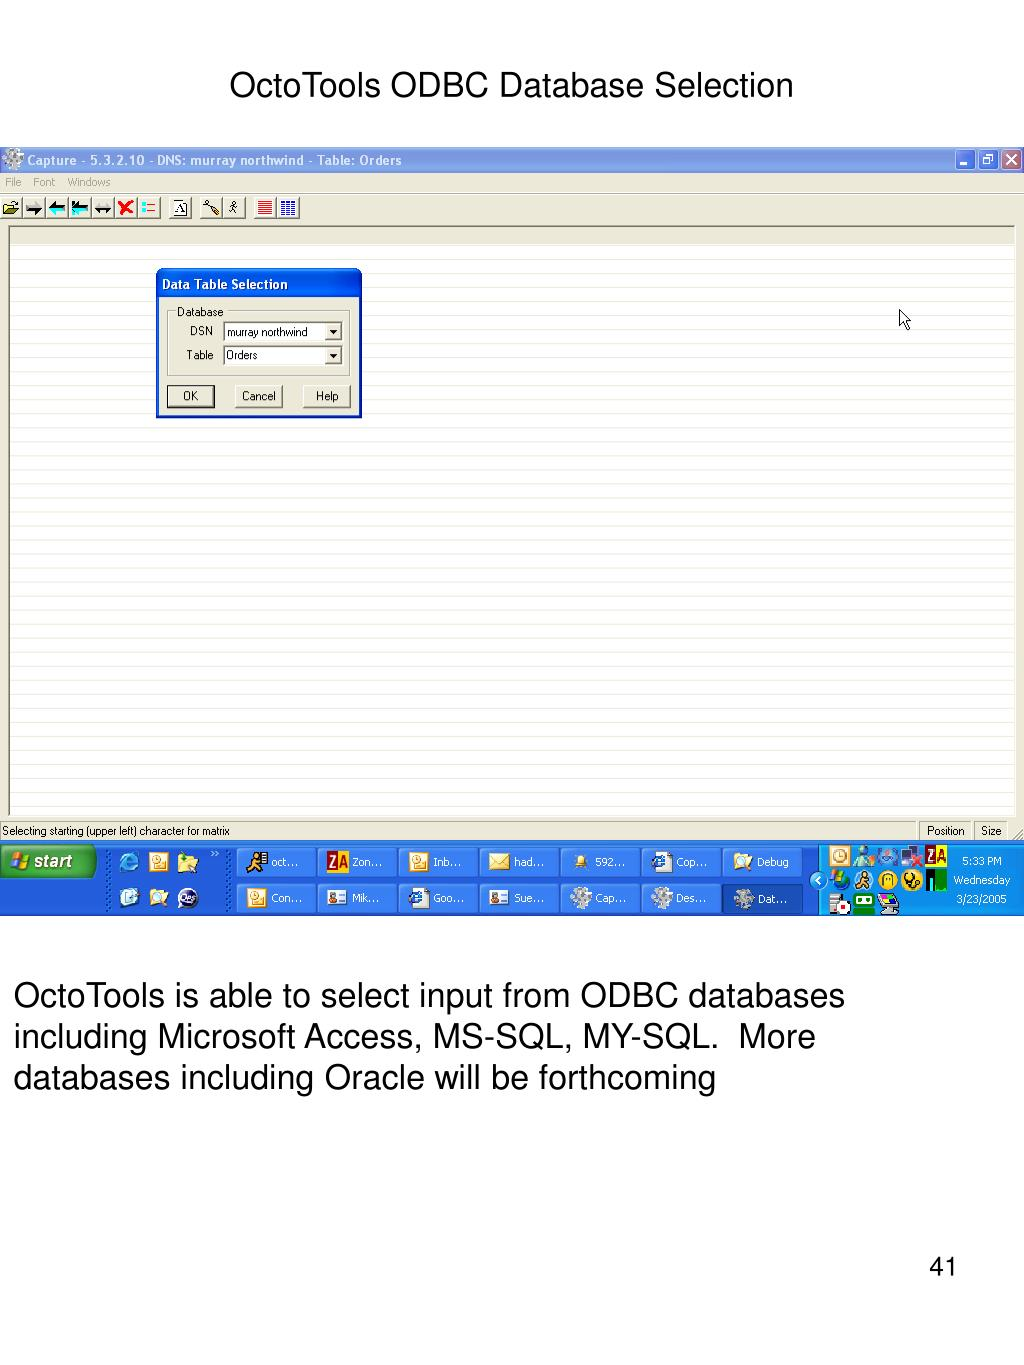 OctoTools ODBC Database Selection